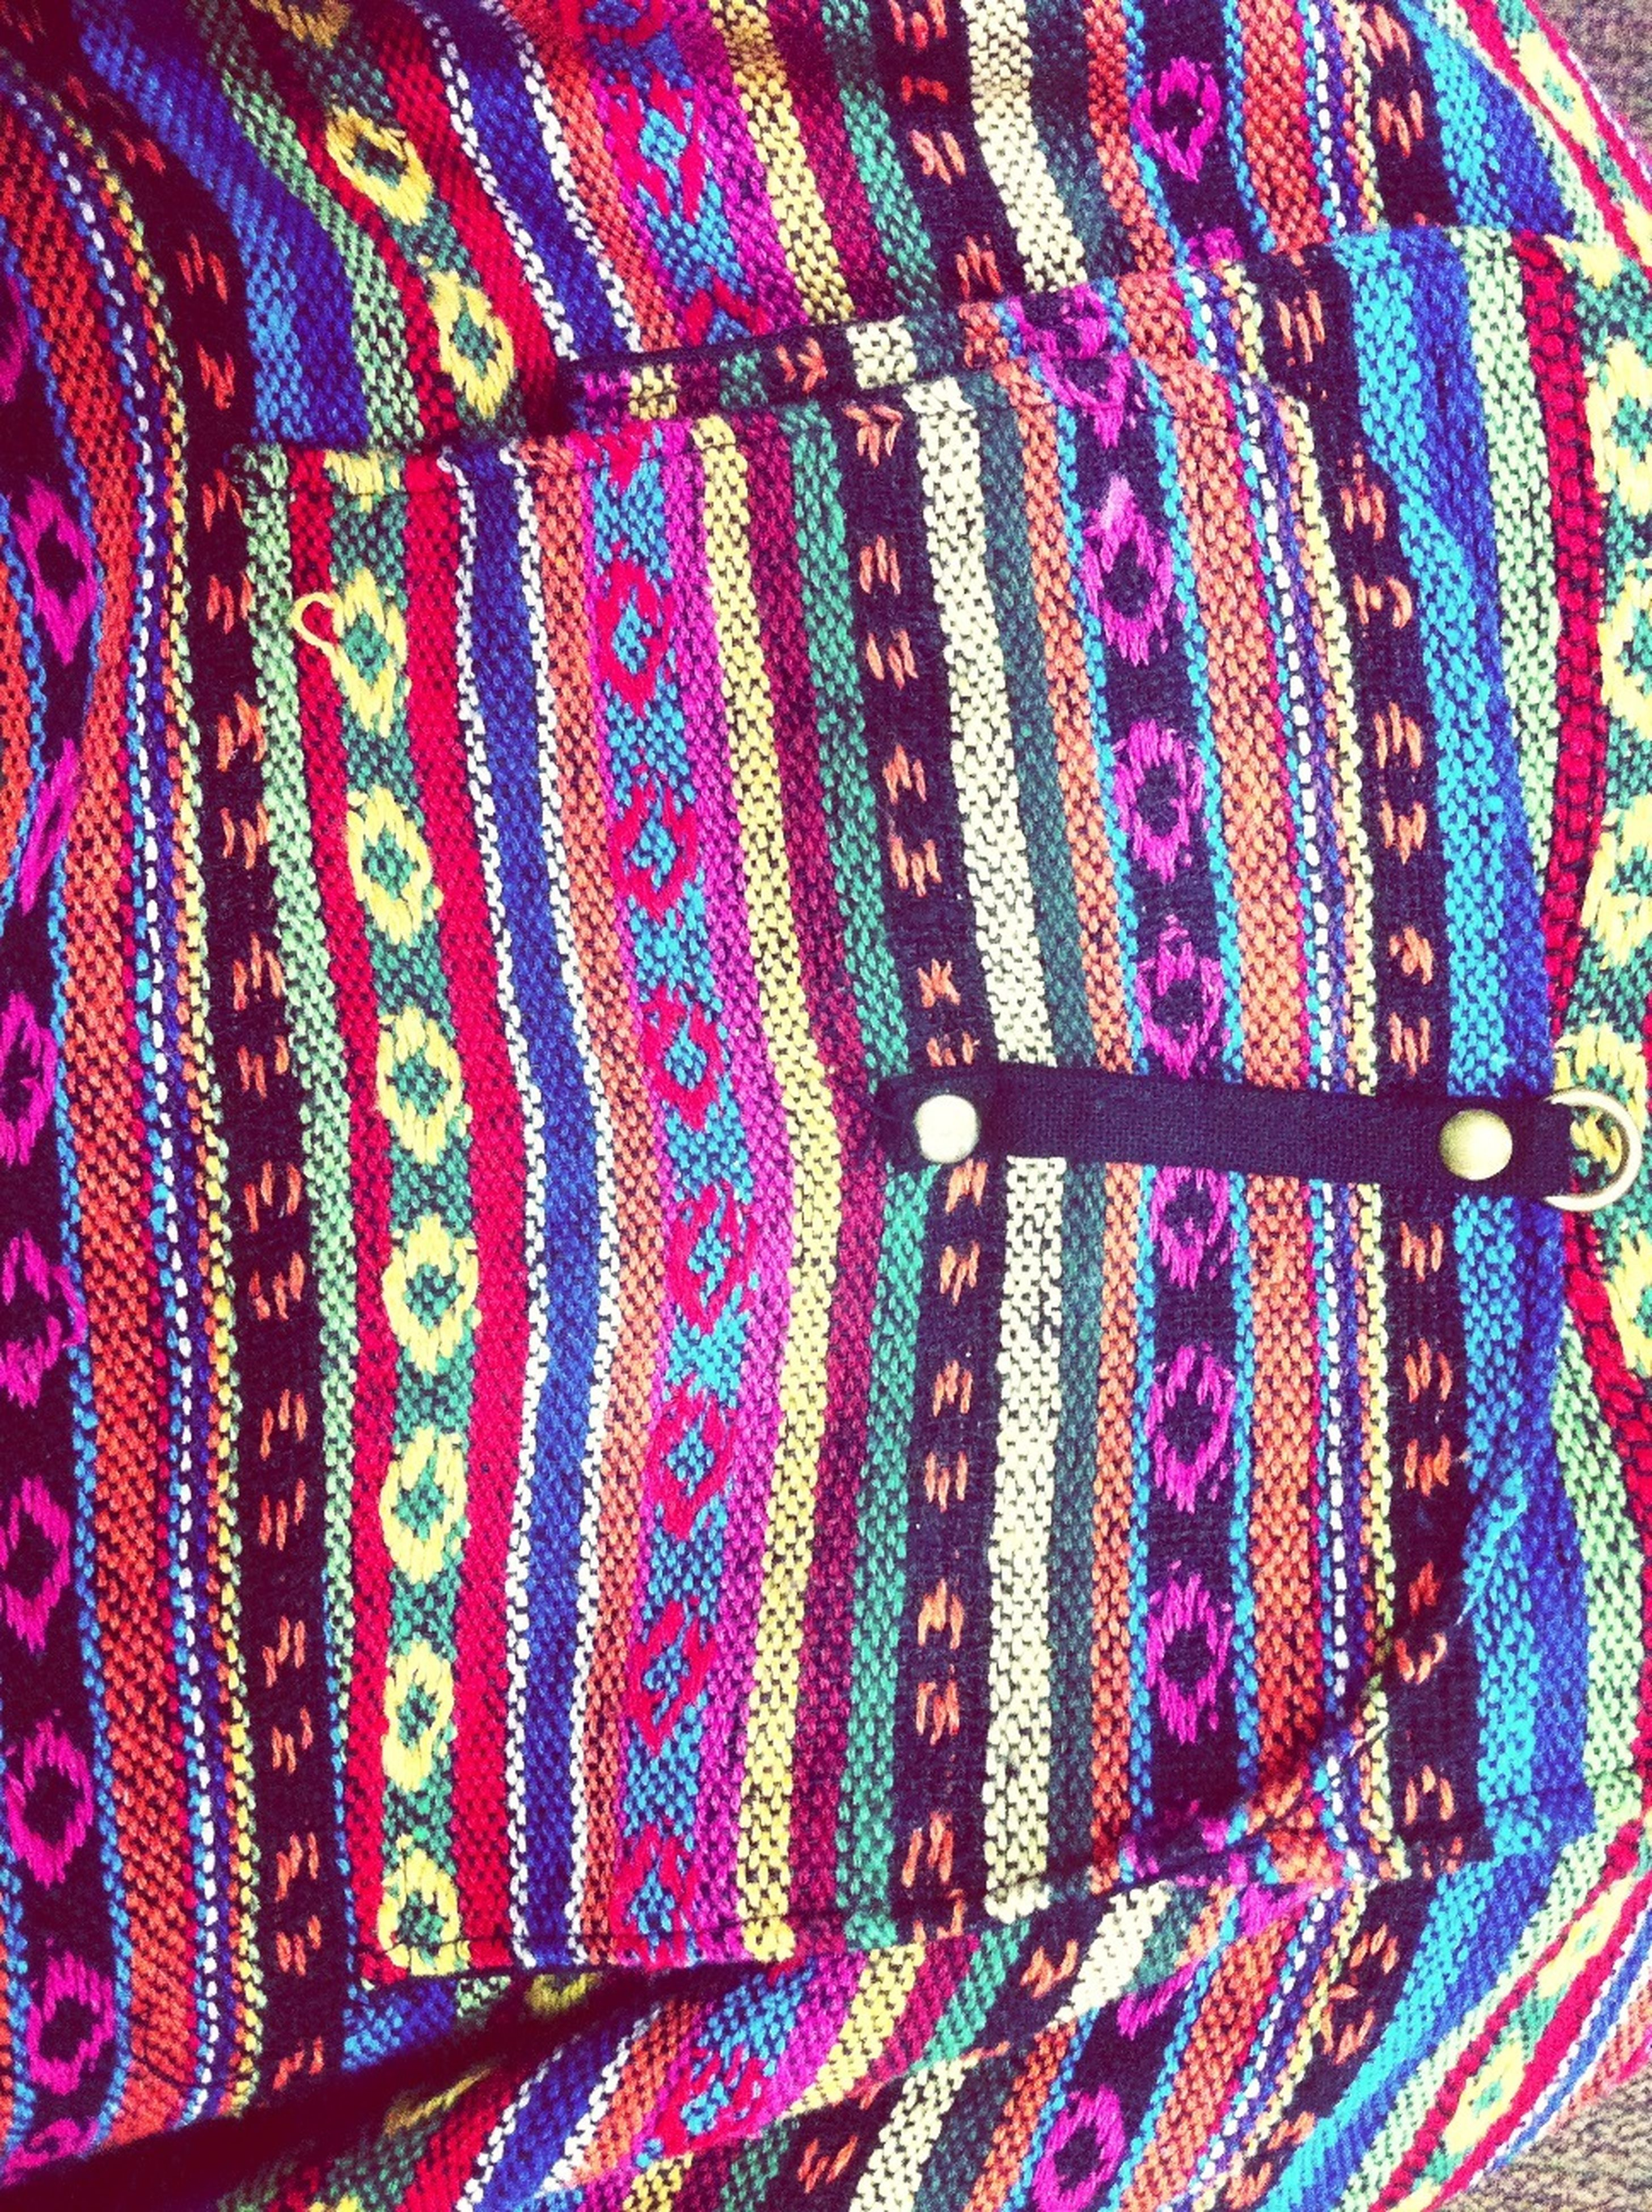 multi colored, textile, indoors, full frame, pattern, fabric, backgrounds, colorful, blue, design, close-up, textured, purple, material, high angle view, variation, art and craft, clothing, floral pattern, no people